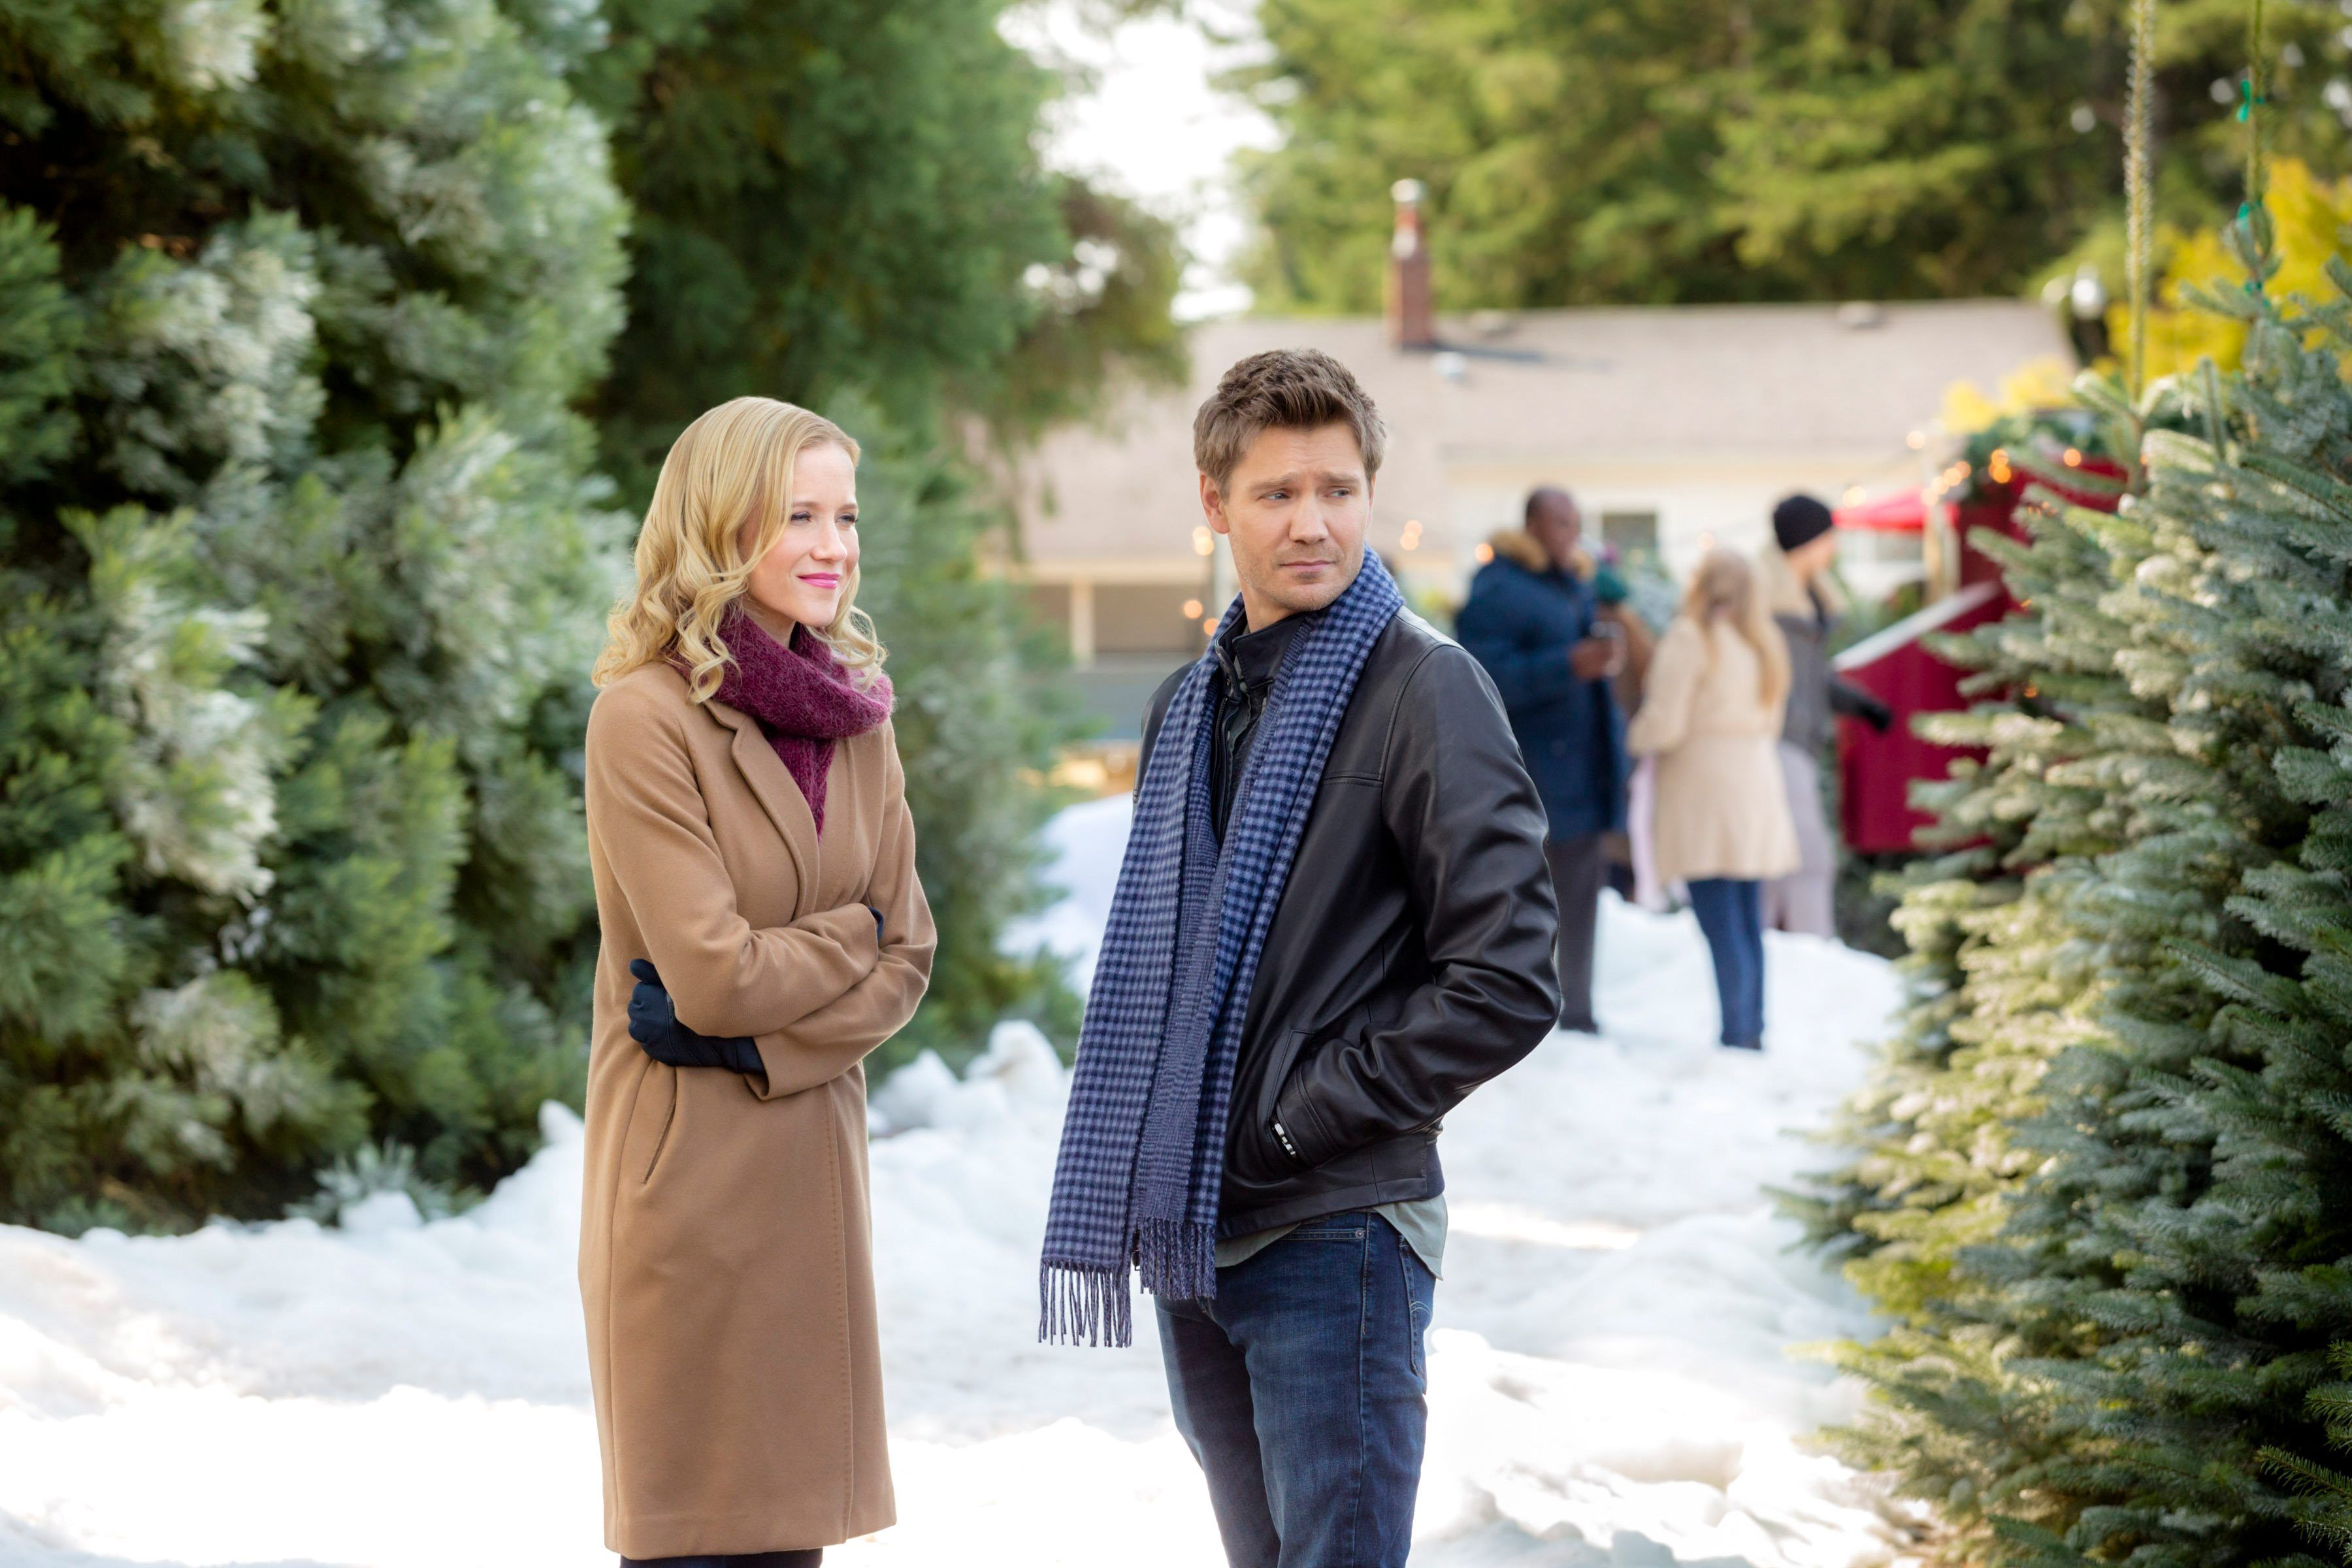 The Hallmark Channel Launched A Line Of Wines Inspired By Their Christmas Movies